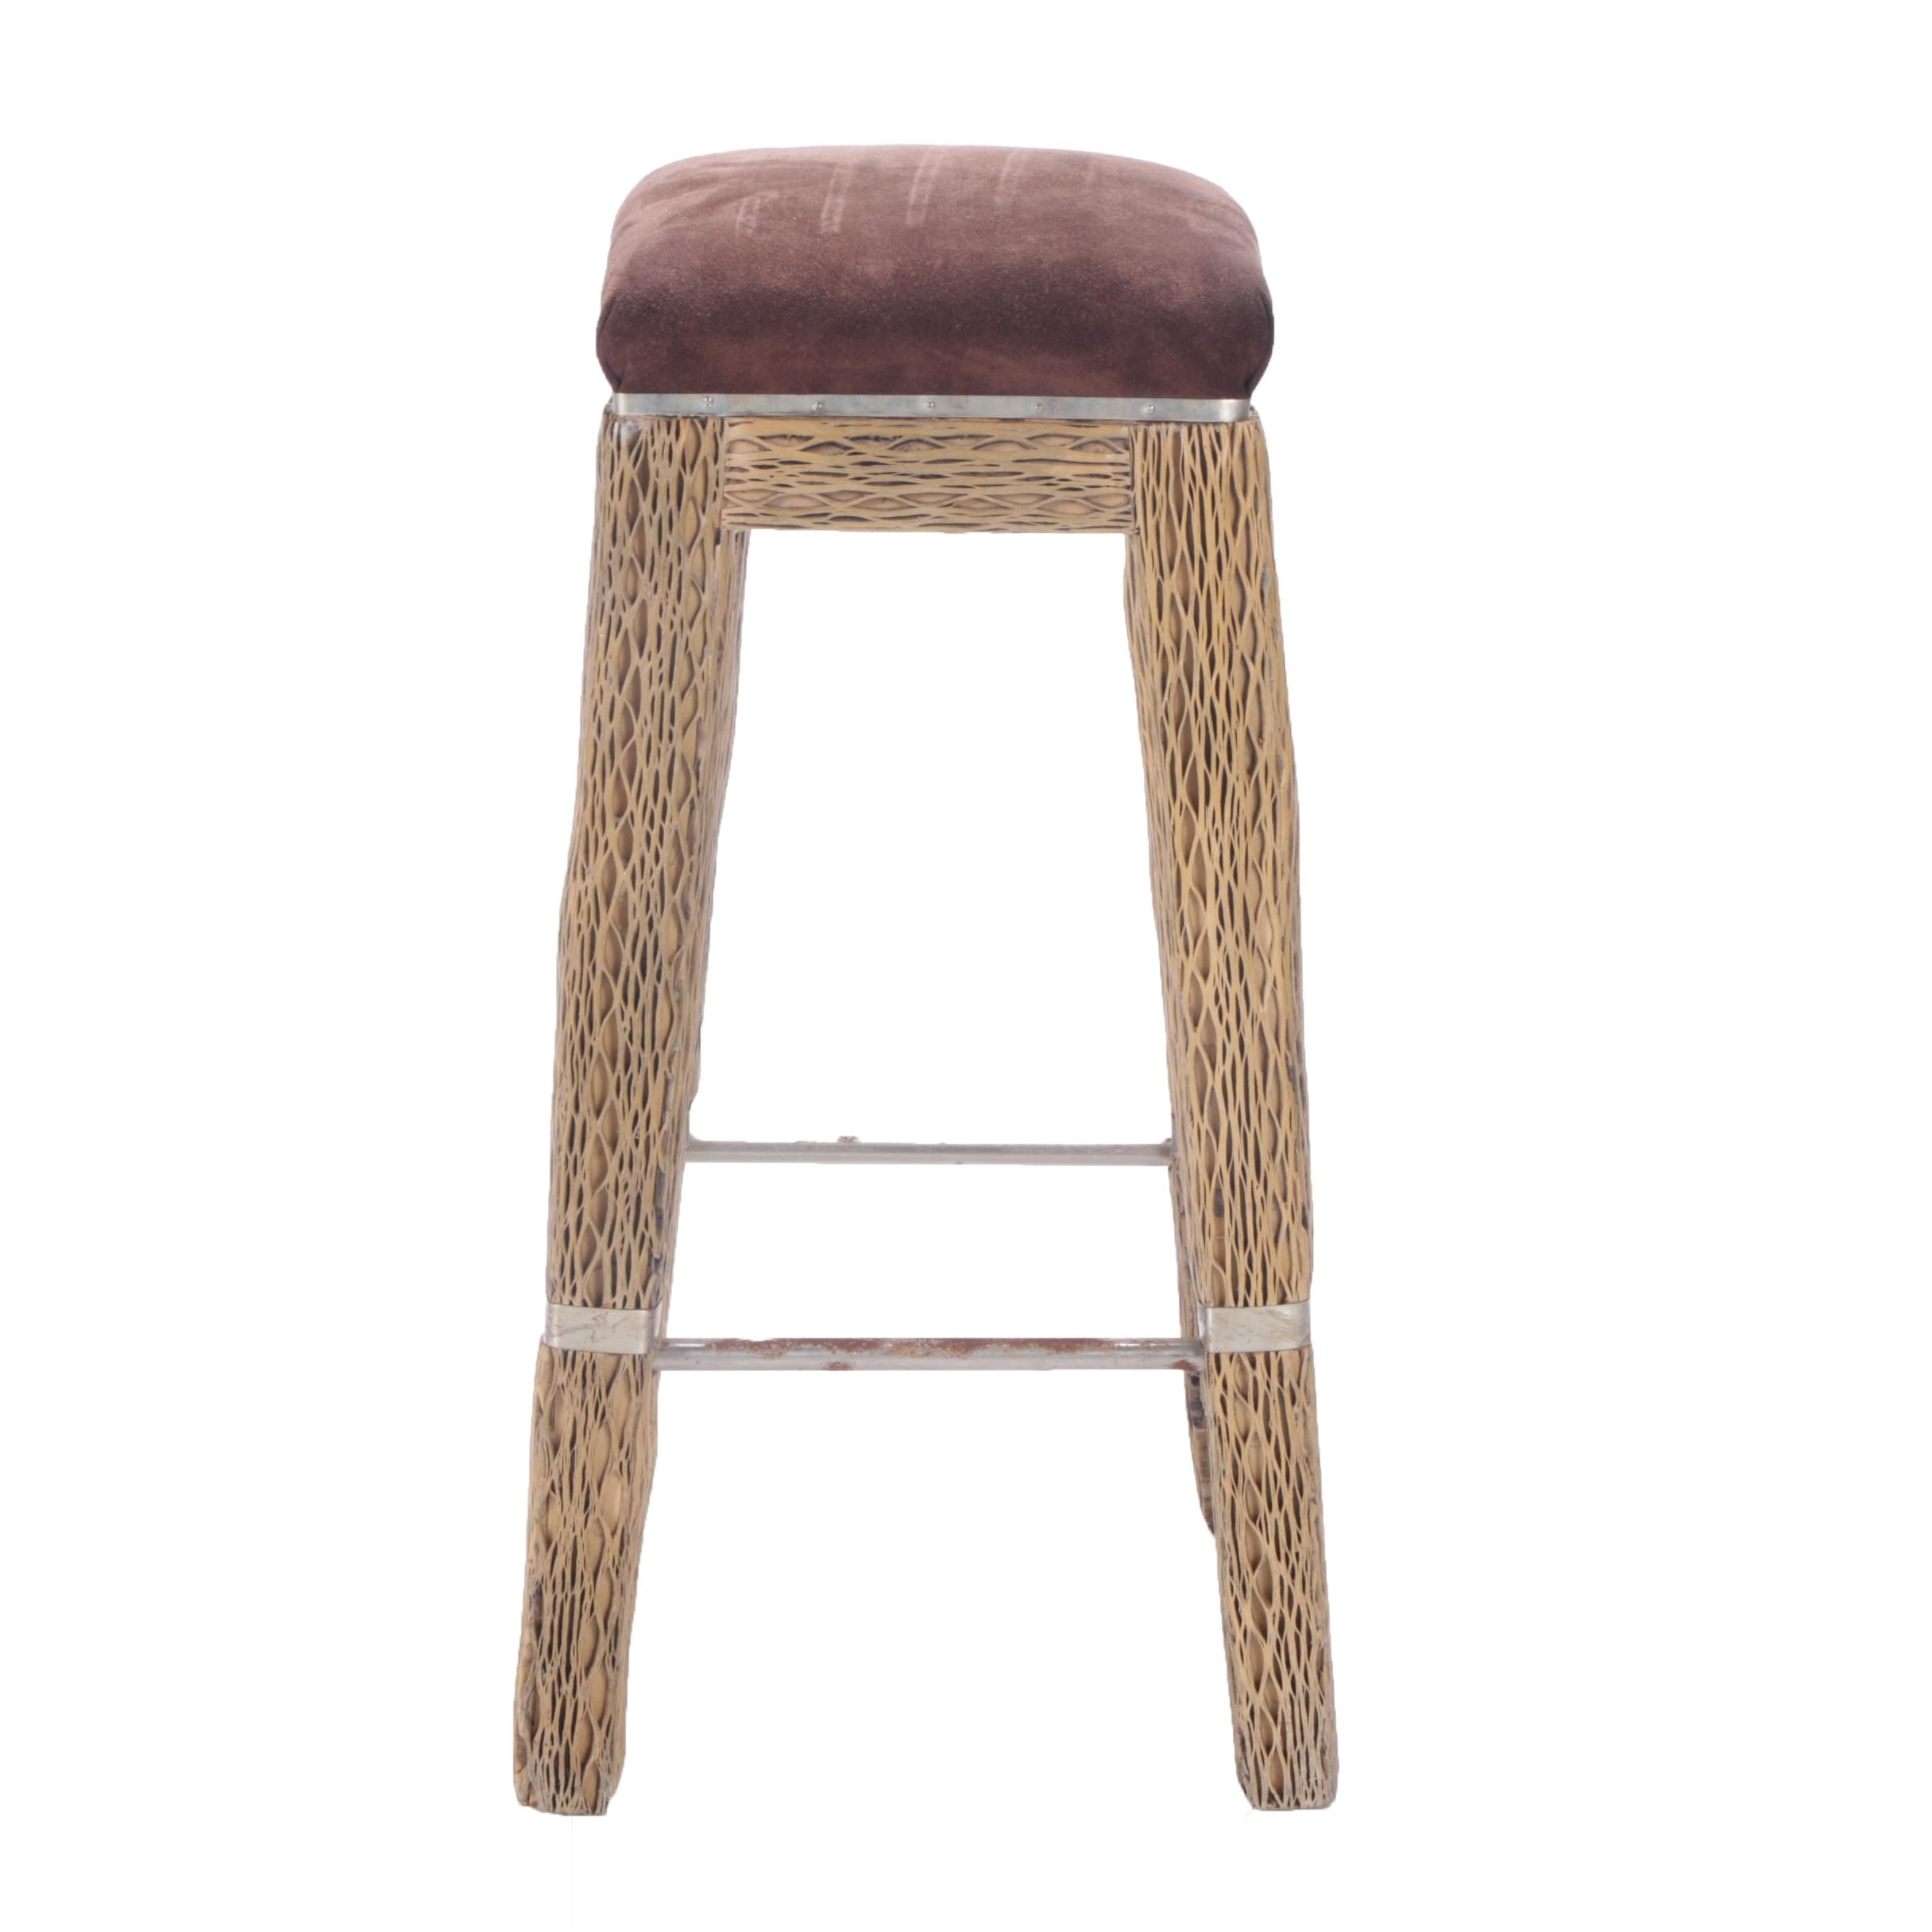 Contemporary Wood and Metal Barstool